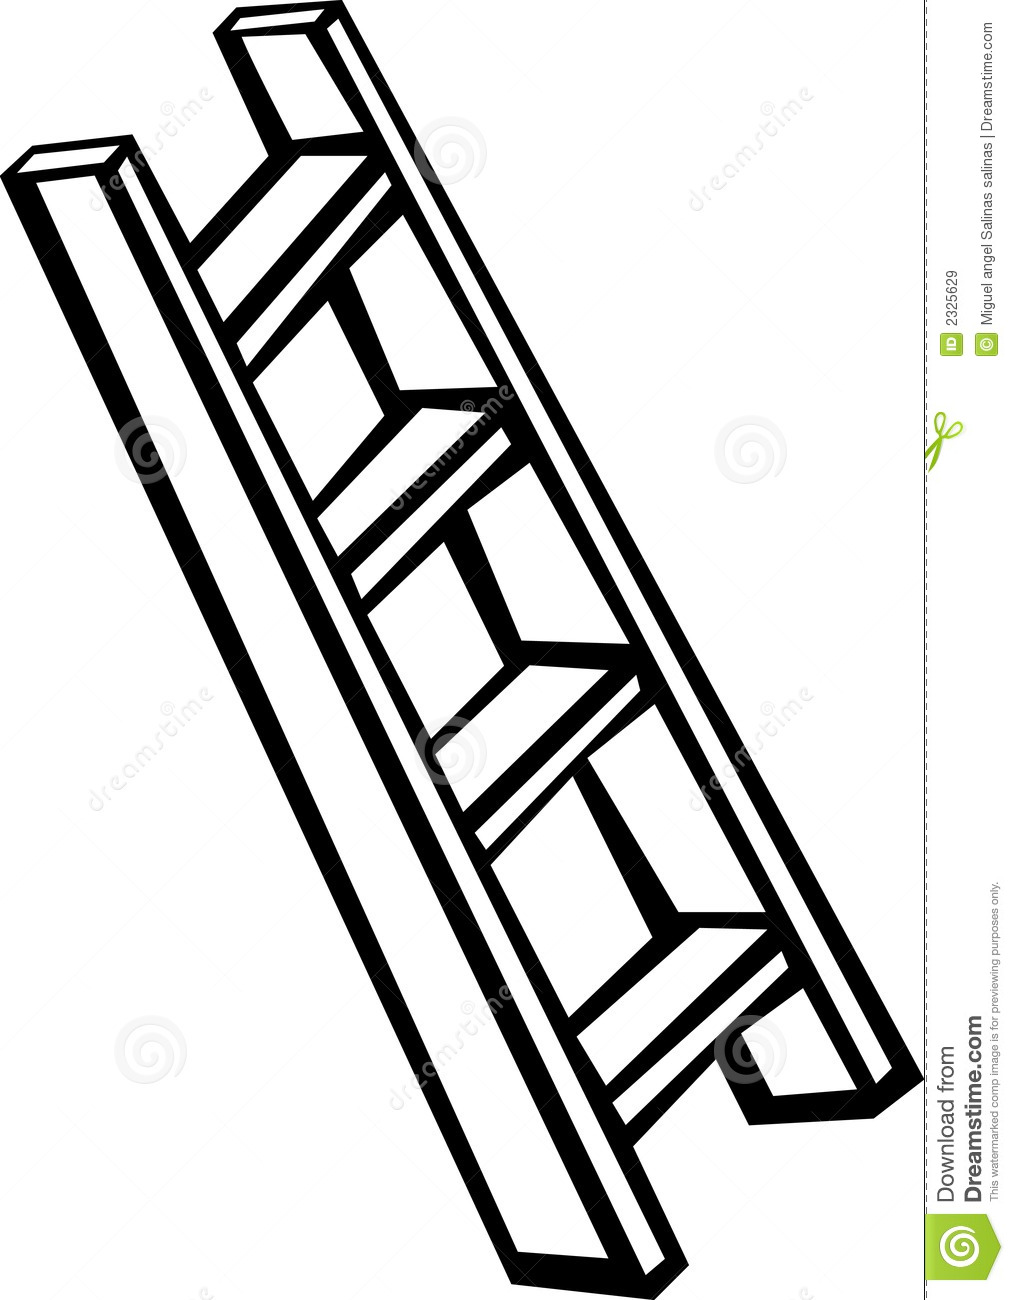 Ladder Clipart Black And White Black And White Illustration